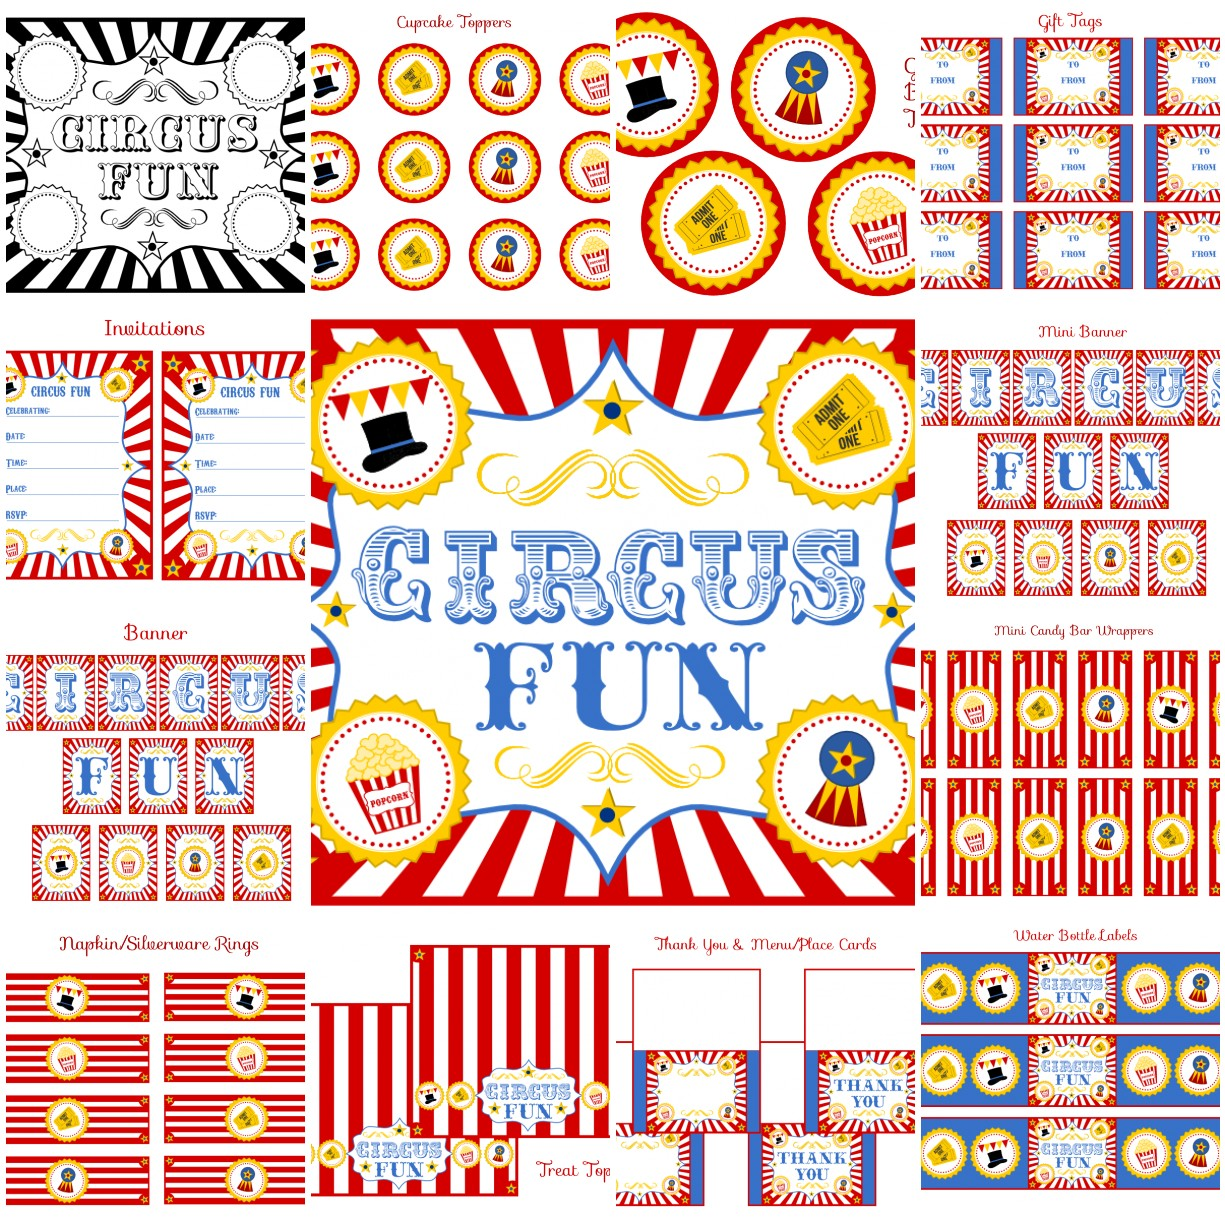 FREE Circus Birthday Party Printables From Printabelle Catch My Party - Cupcake name tag template